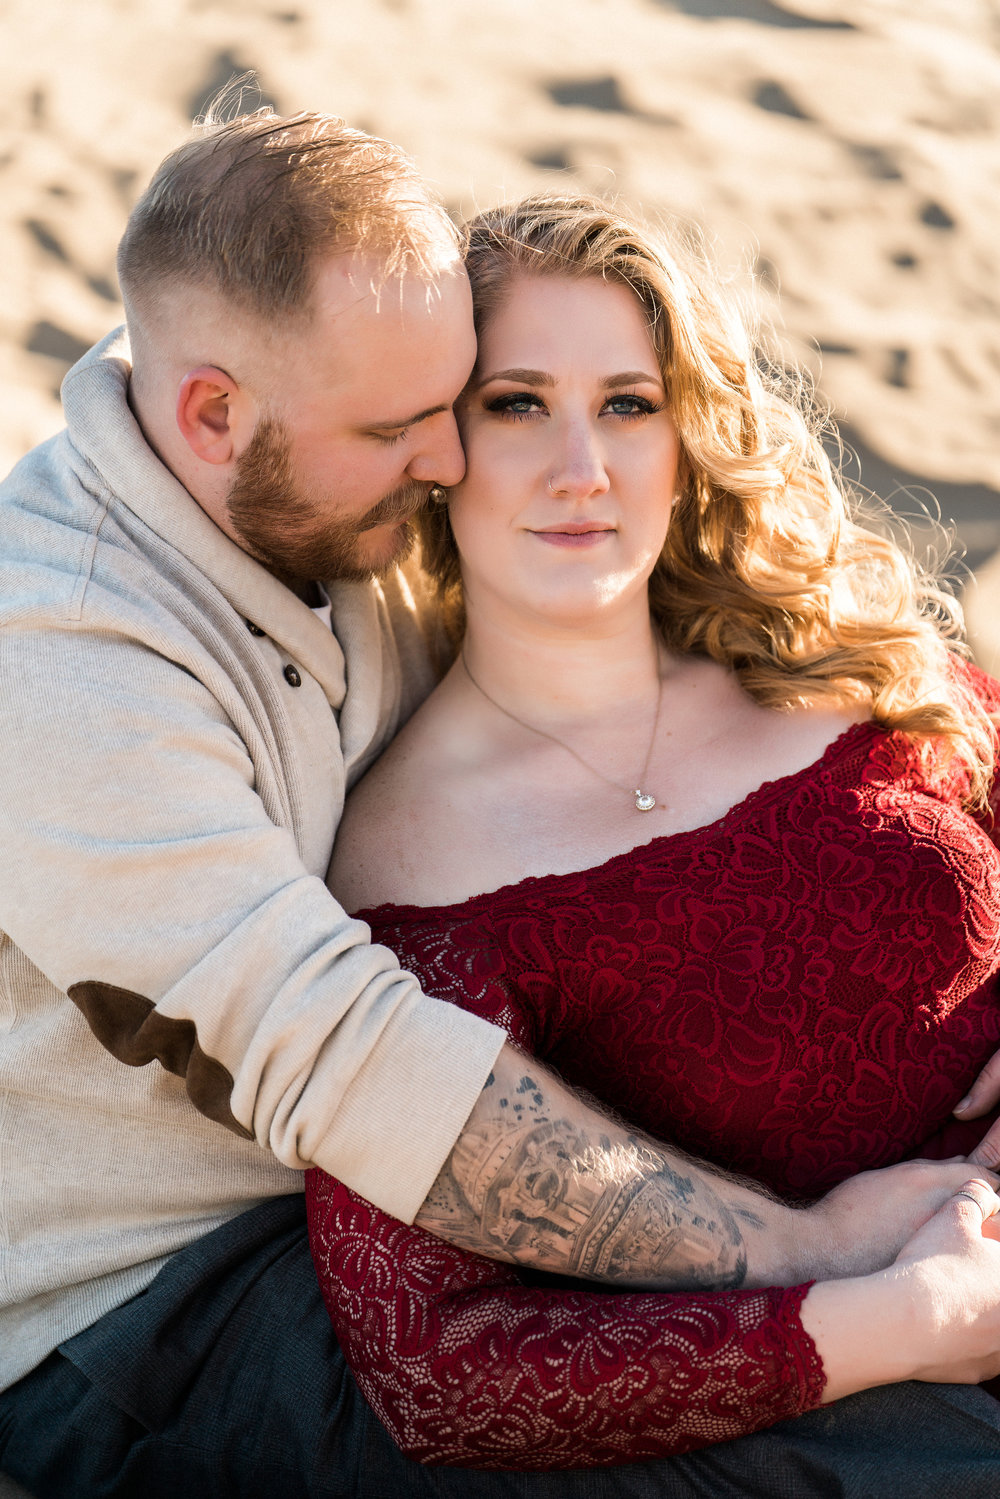 NewMexico-Sand-Dunes-Engagement-Carissa-and-Ben-1126.jpg